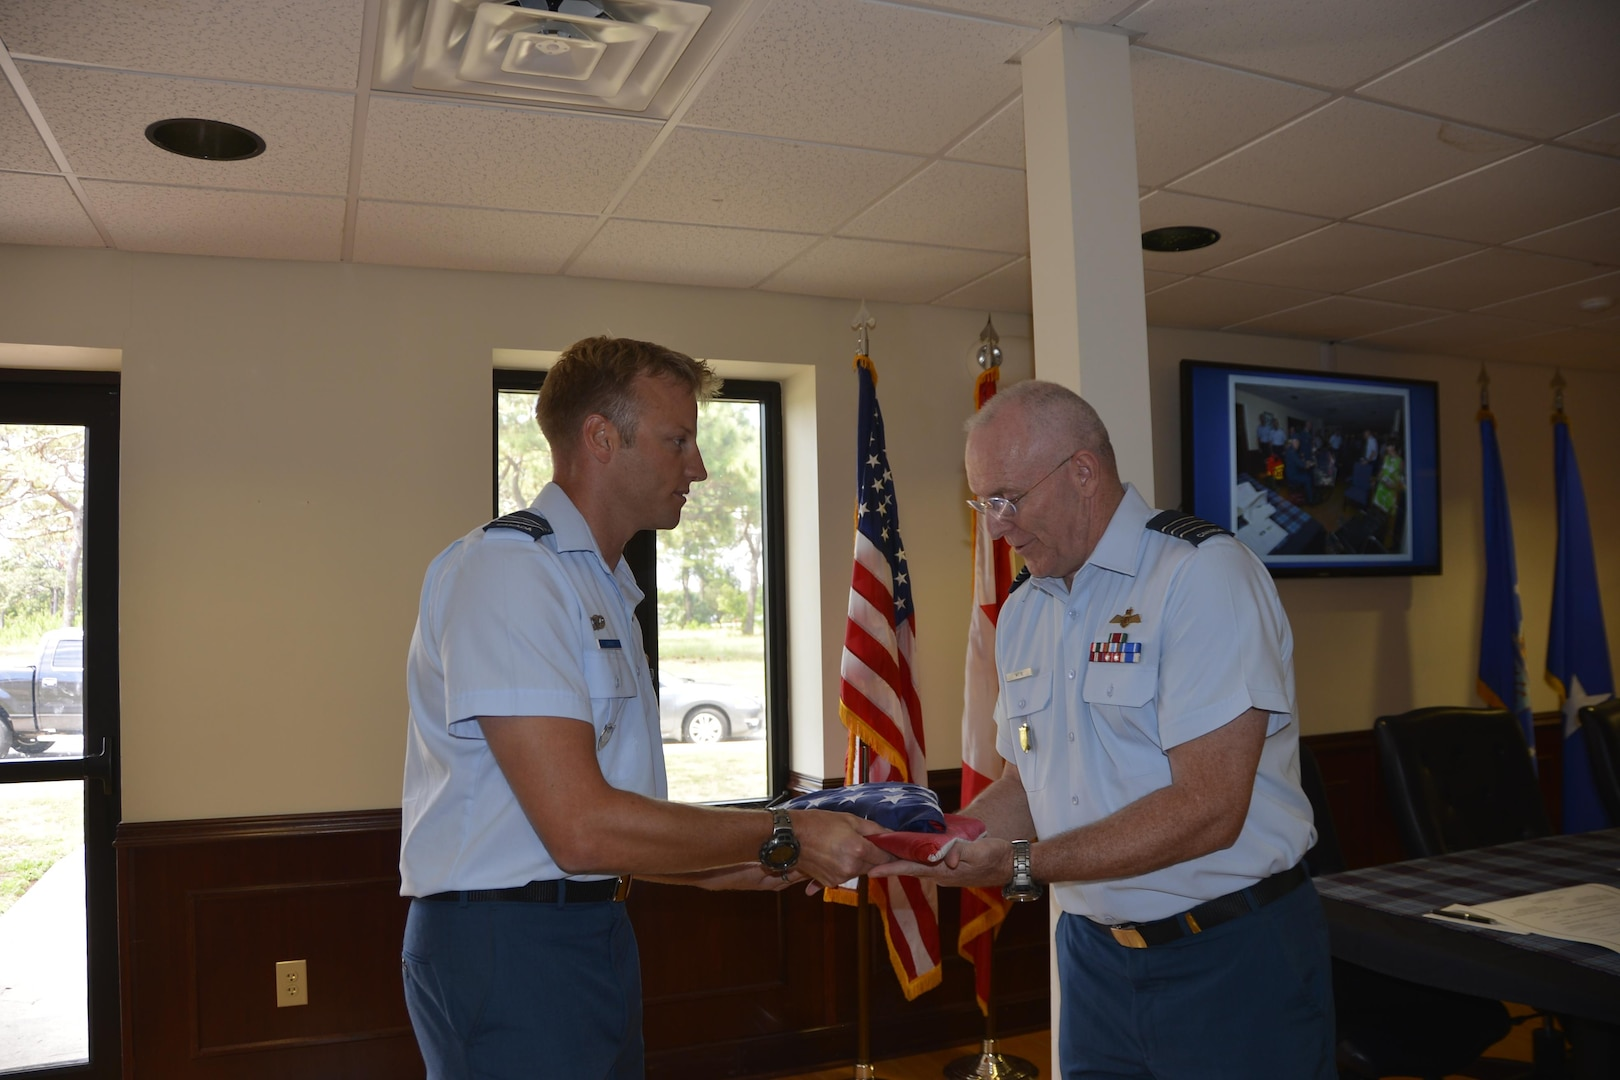 Royal Canadian Air Force Maj Reid Surkan, Continental U.S. Aerospace Defense Region-1st Air Force (Air Forces Northern) Plans, Policy and International Military Affairs Directorate, presents folded Canadian and American flags to LCol Larry Weir, in recognition of Weir's honorable tenure as Canadian Detachment Commander during a change of command ceremony here May 18. During the ceremony, Weir relinquished command to LCol Brian Murray. (Air Force Photo released/Mary McHale)